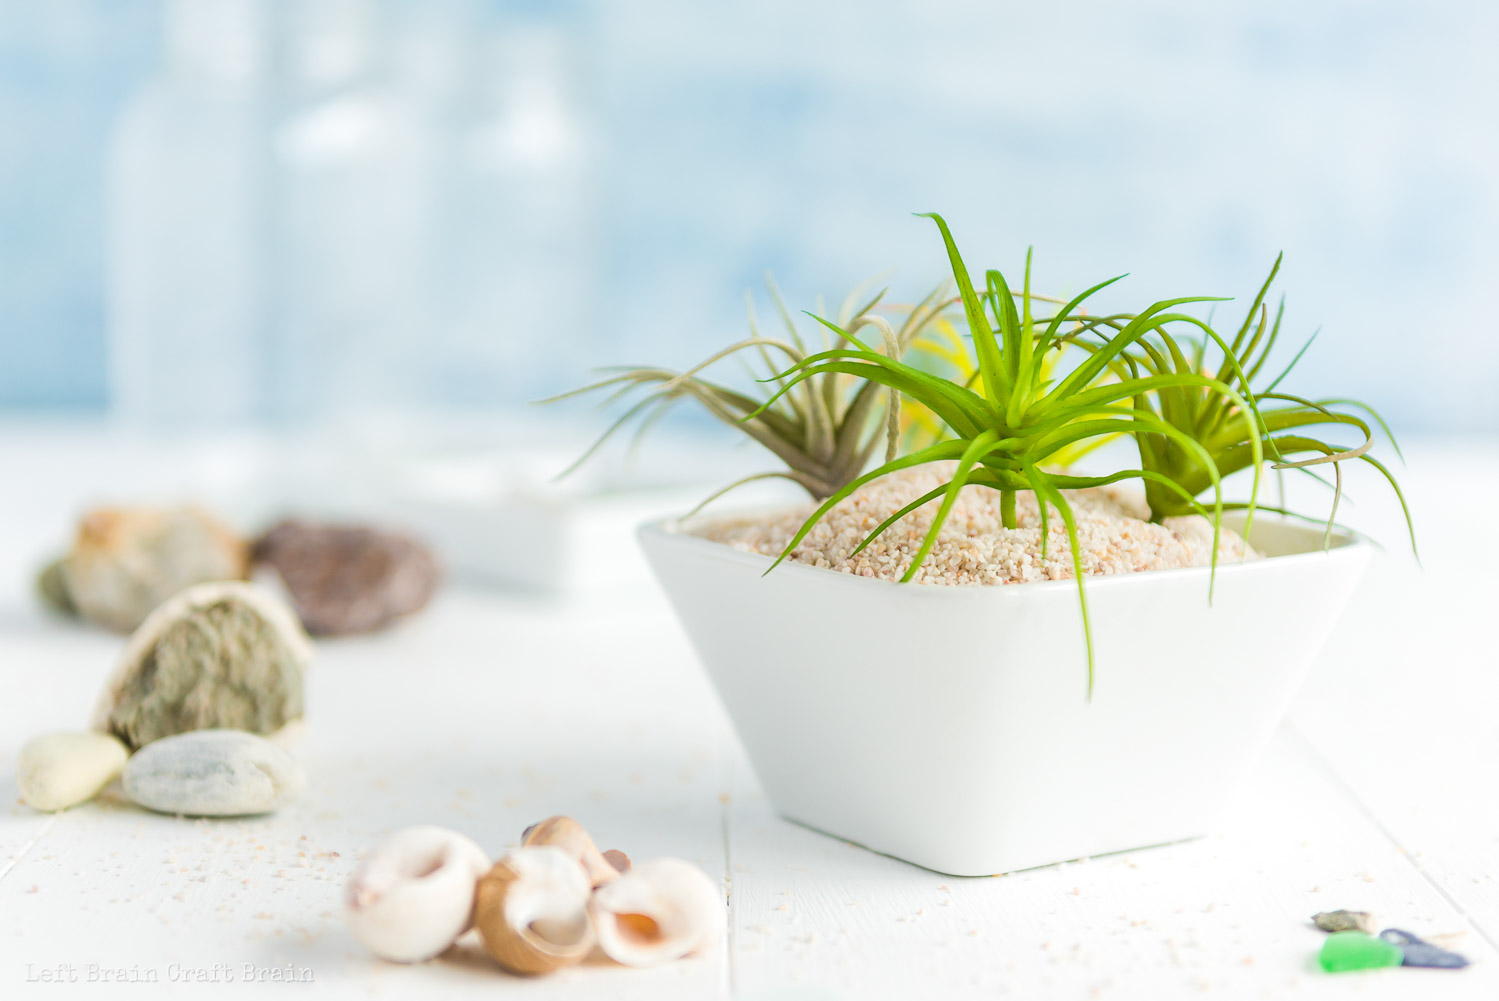 closeup of a bowl filled with sand and tillandsia air plants